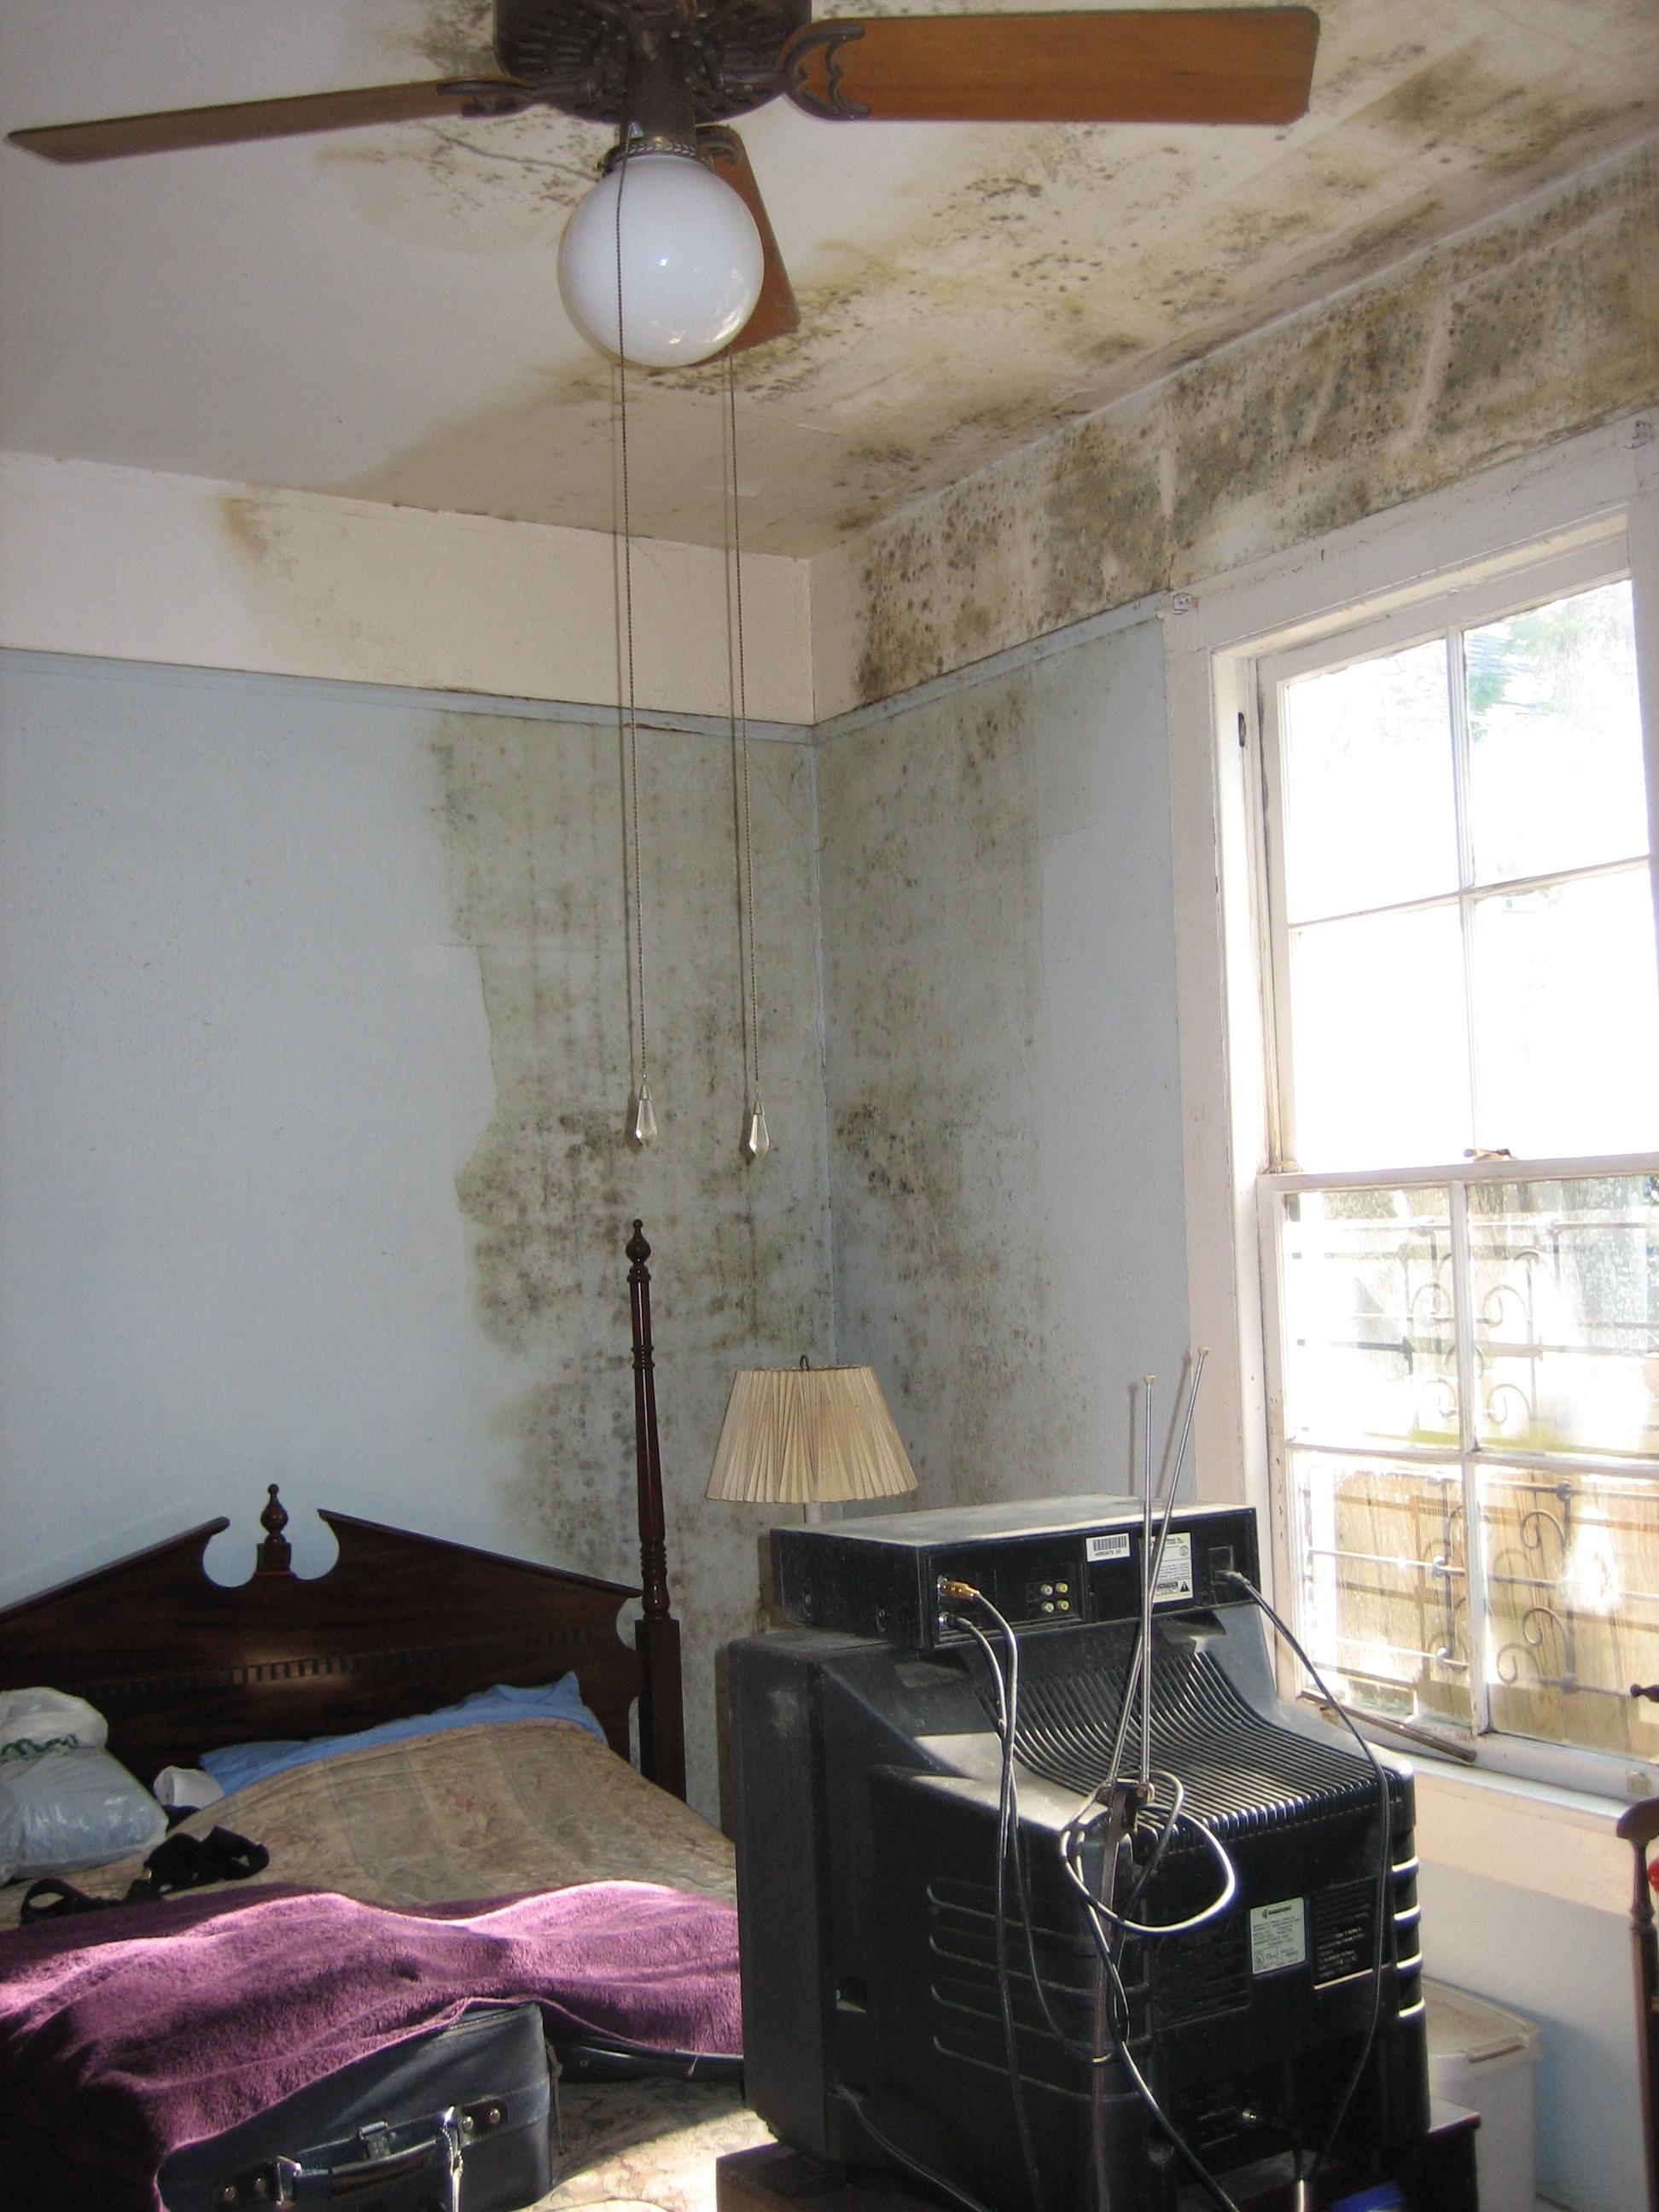 Contact Clean Quest for Mold Remediation in Your Home